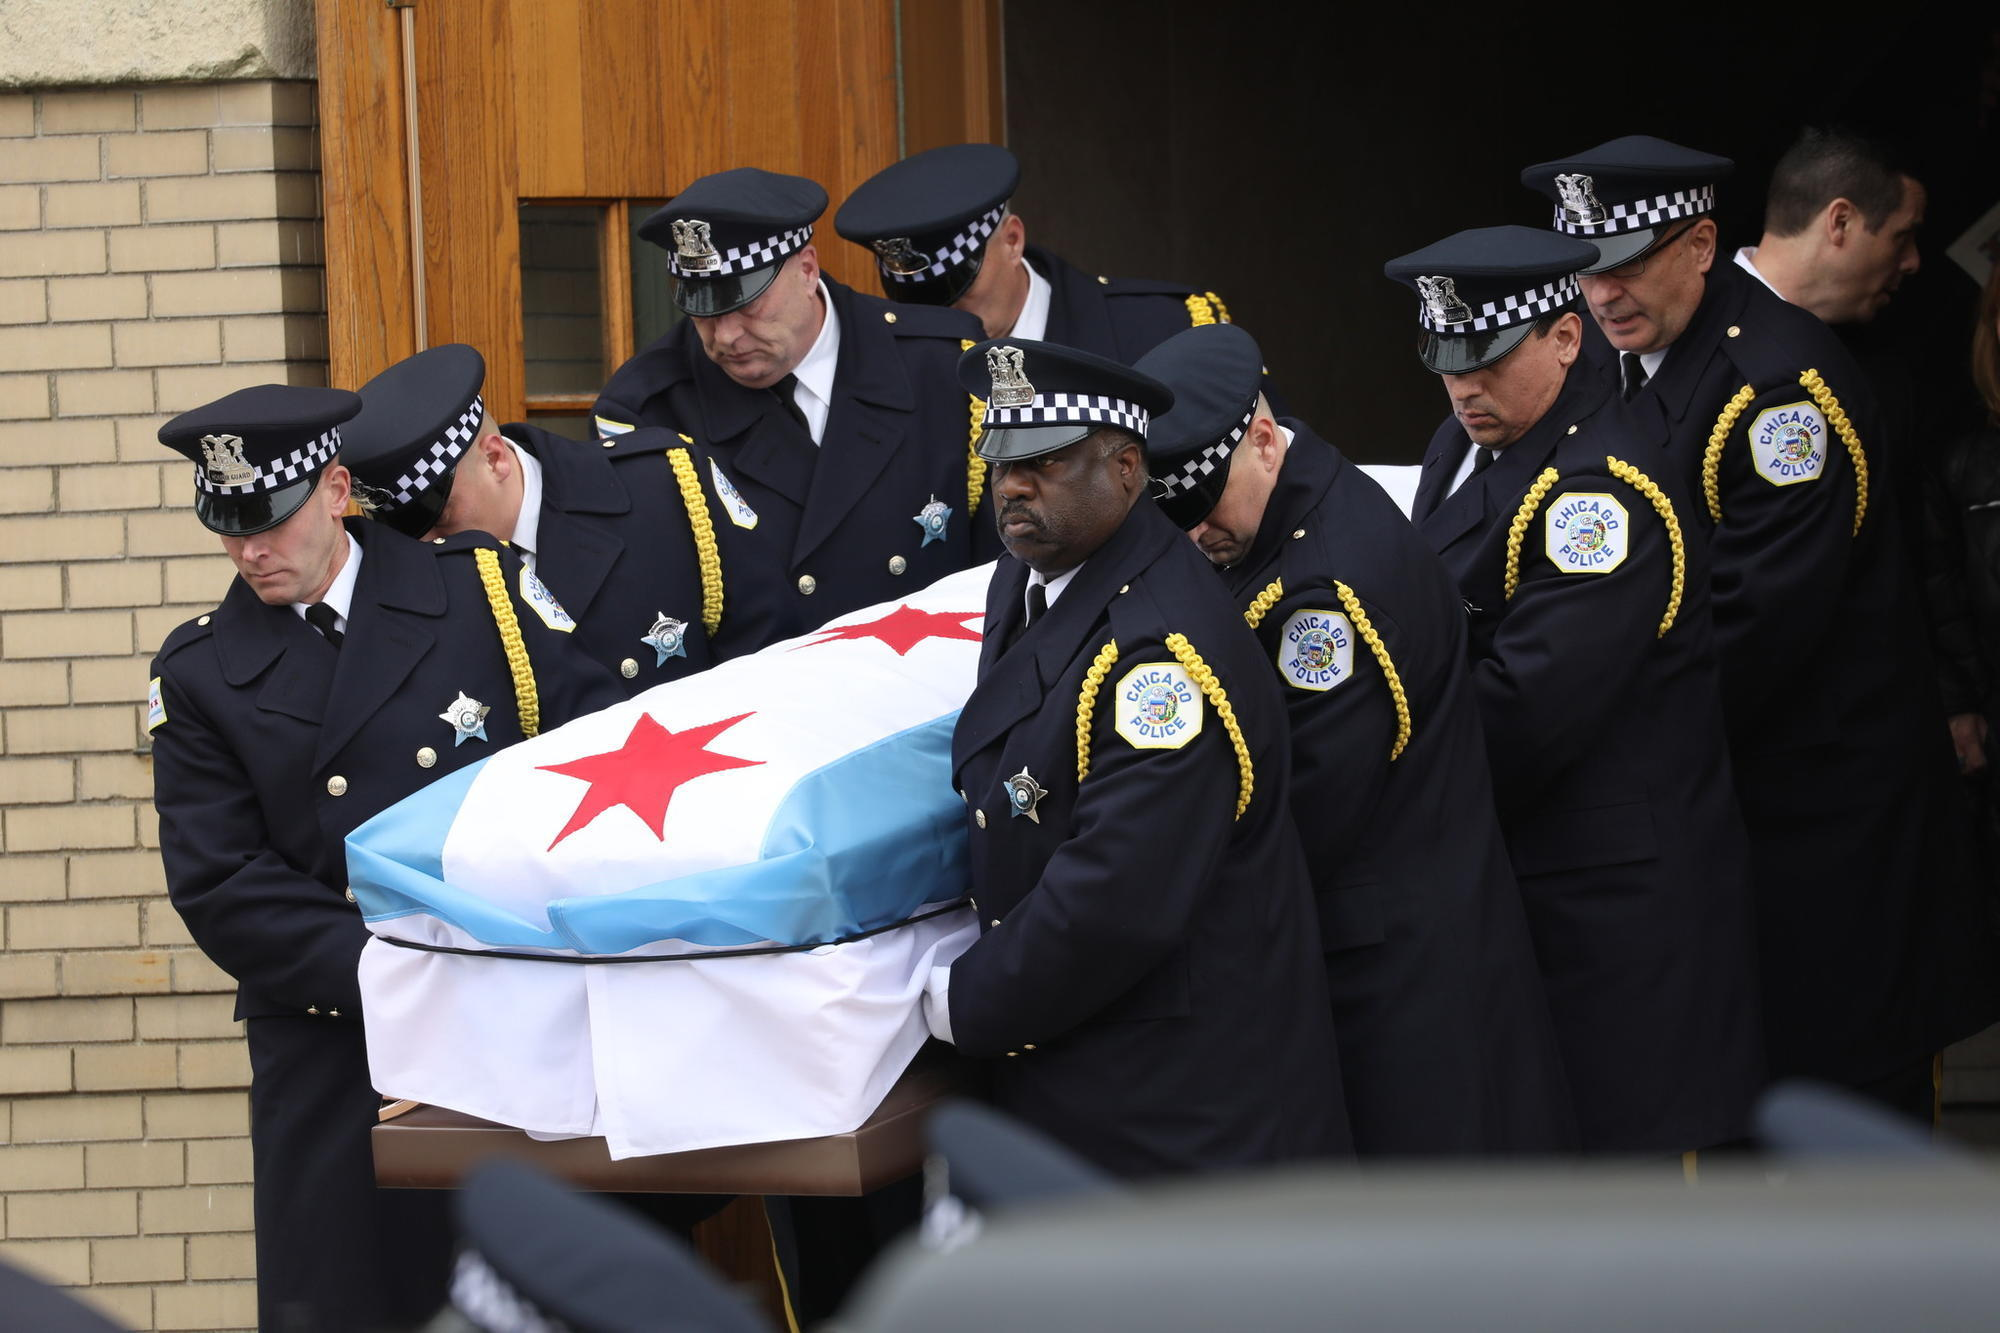 Slain Police Commander Laid To Rest With Stories Of